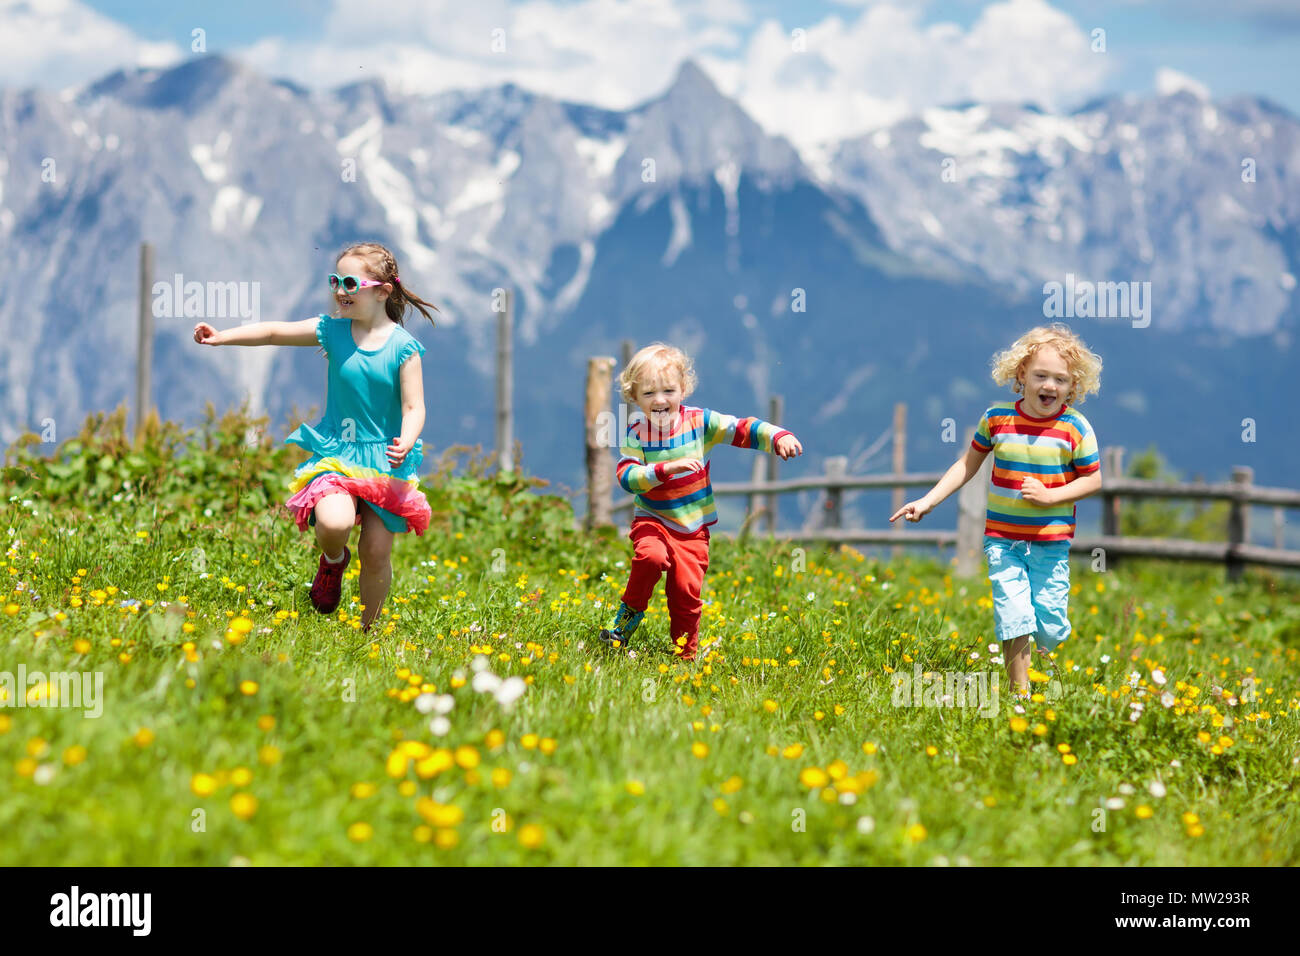 Children Hiking In Alps Mountains Kids Run At Snow Covered Mountain Austria Spring Family Vacation Little Boy And Girl On Hike Trail Blooming